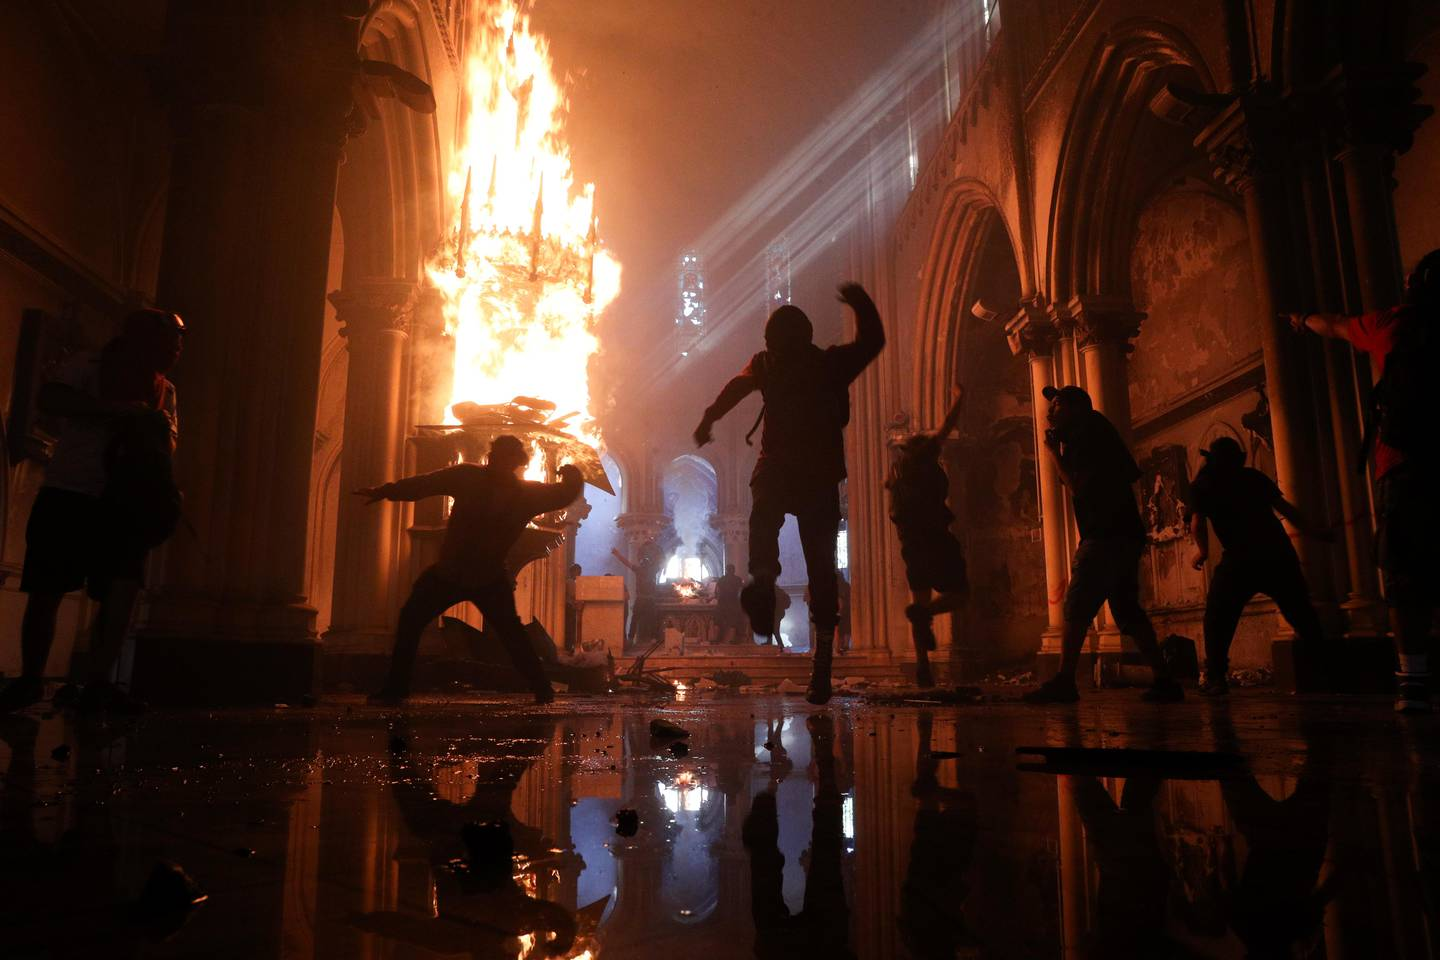 Protesters storm the San Francisco de Borja church, that belongs to Carabineros, Chile's national police force, on the one-year anniversary of the start of anti-government mass protests over inequality in Santiago, Chile, Sunday, Oct. 18, 2020.  (AP Photo/Esteban Felt)